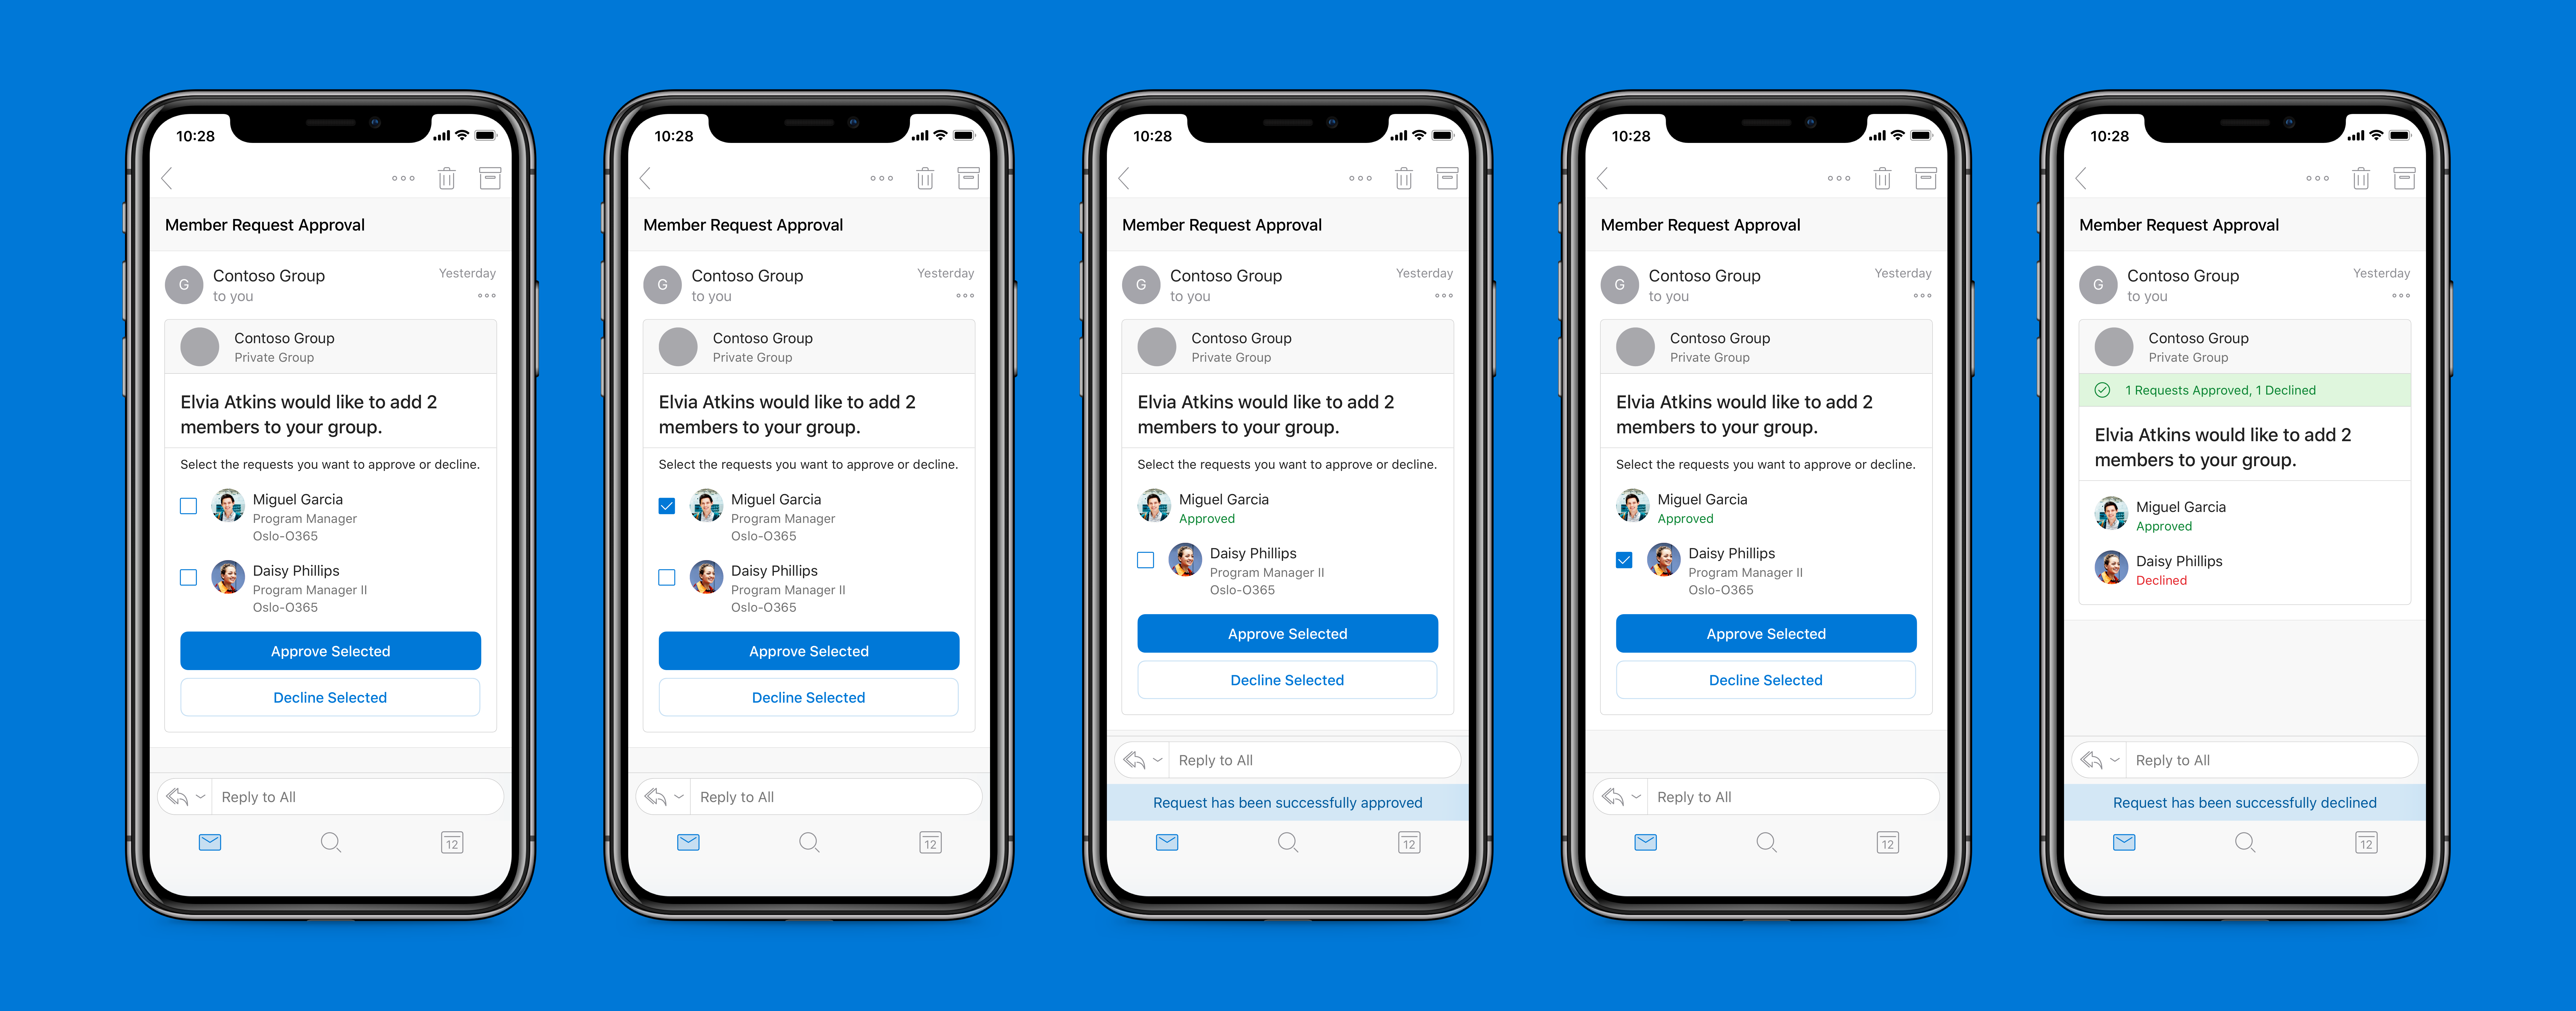 509edf31 Actionable Messages in Outlook mobile help you act fast on the go -  Microsoft Tech Community - 483559